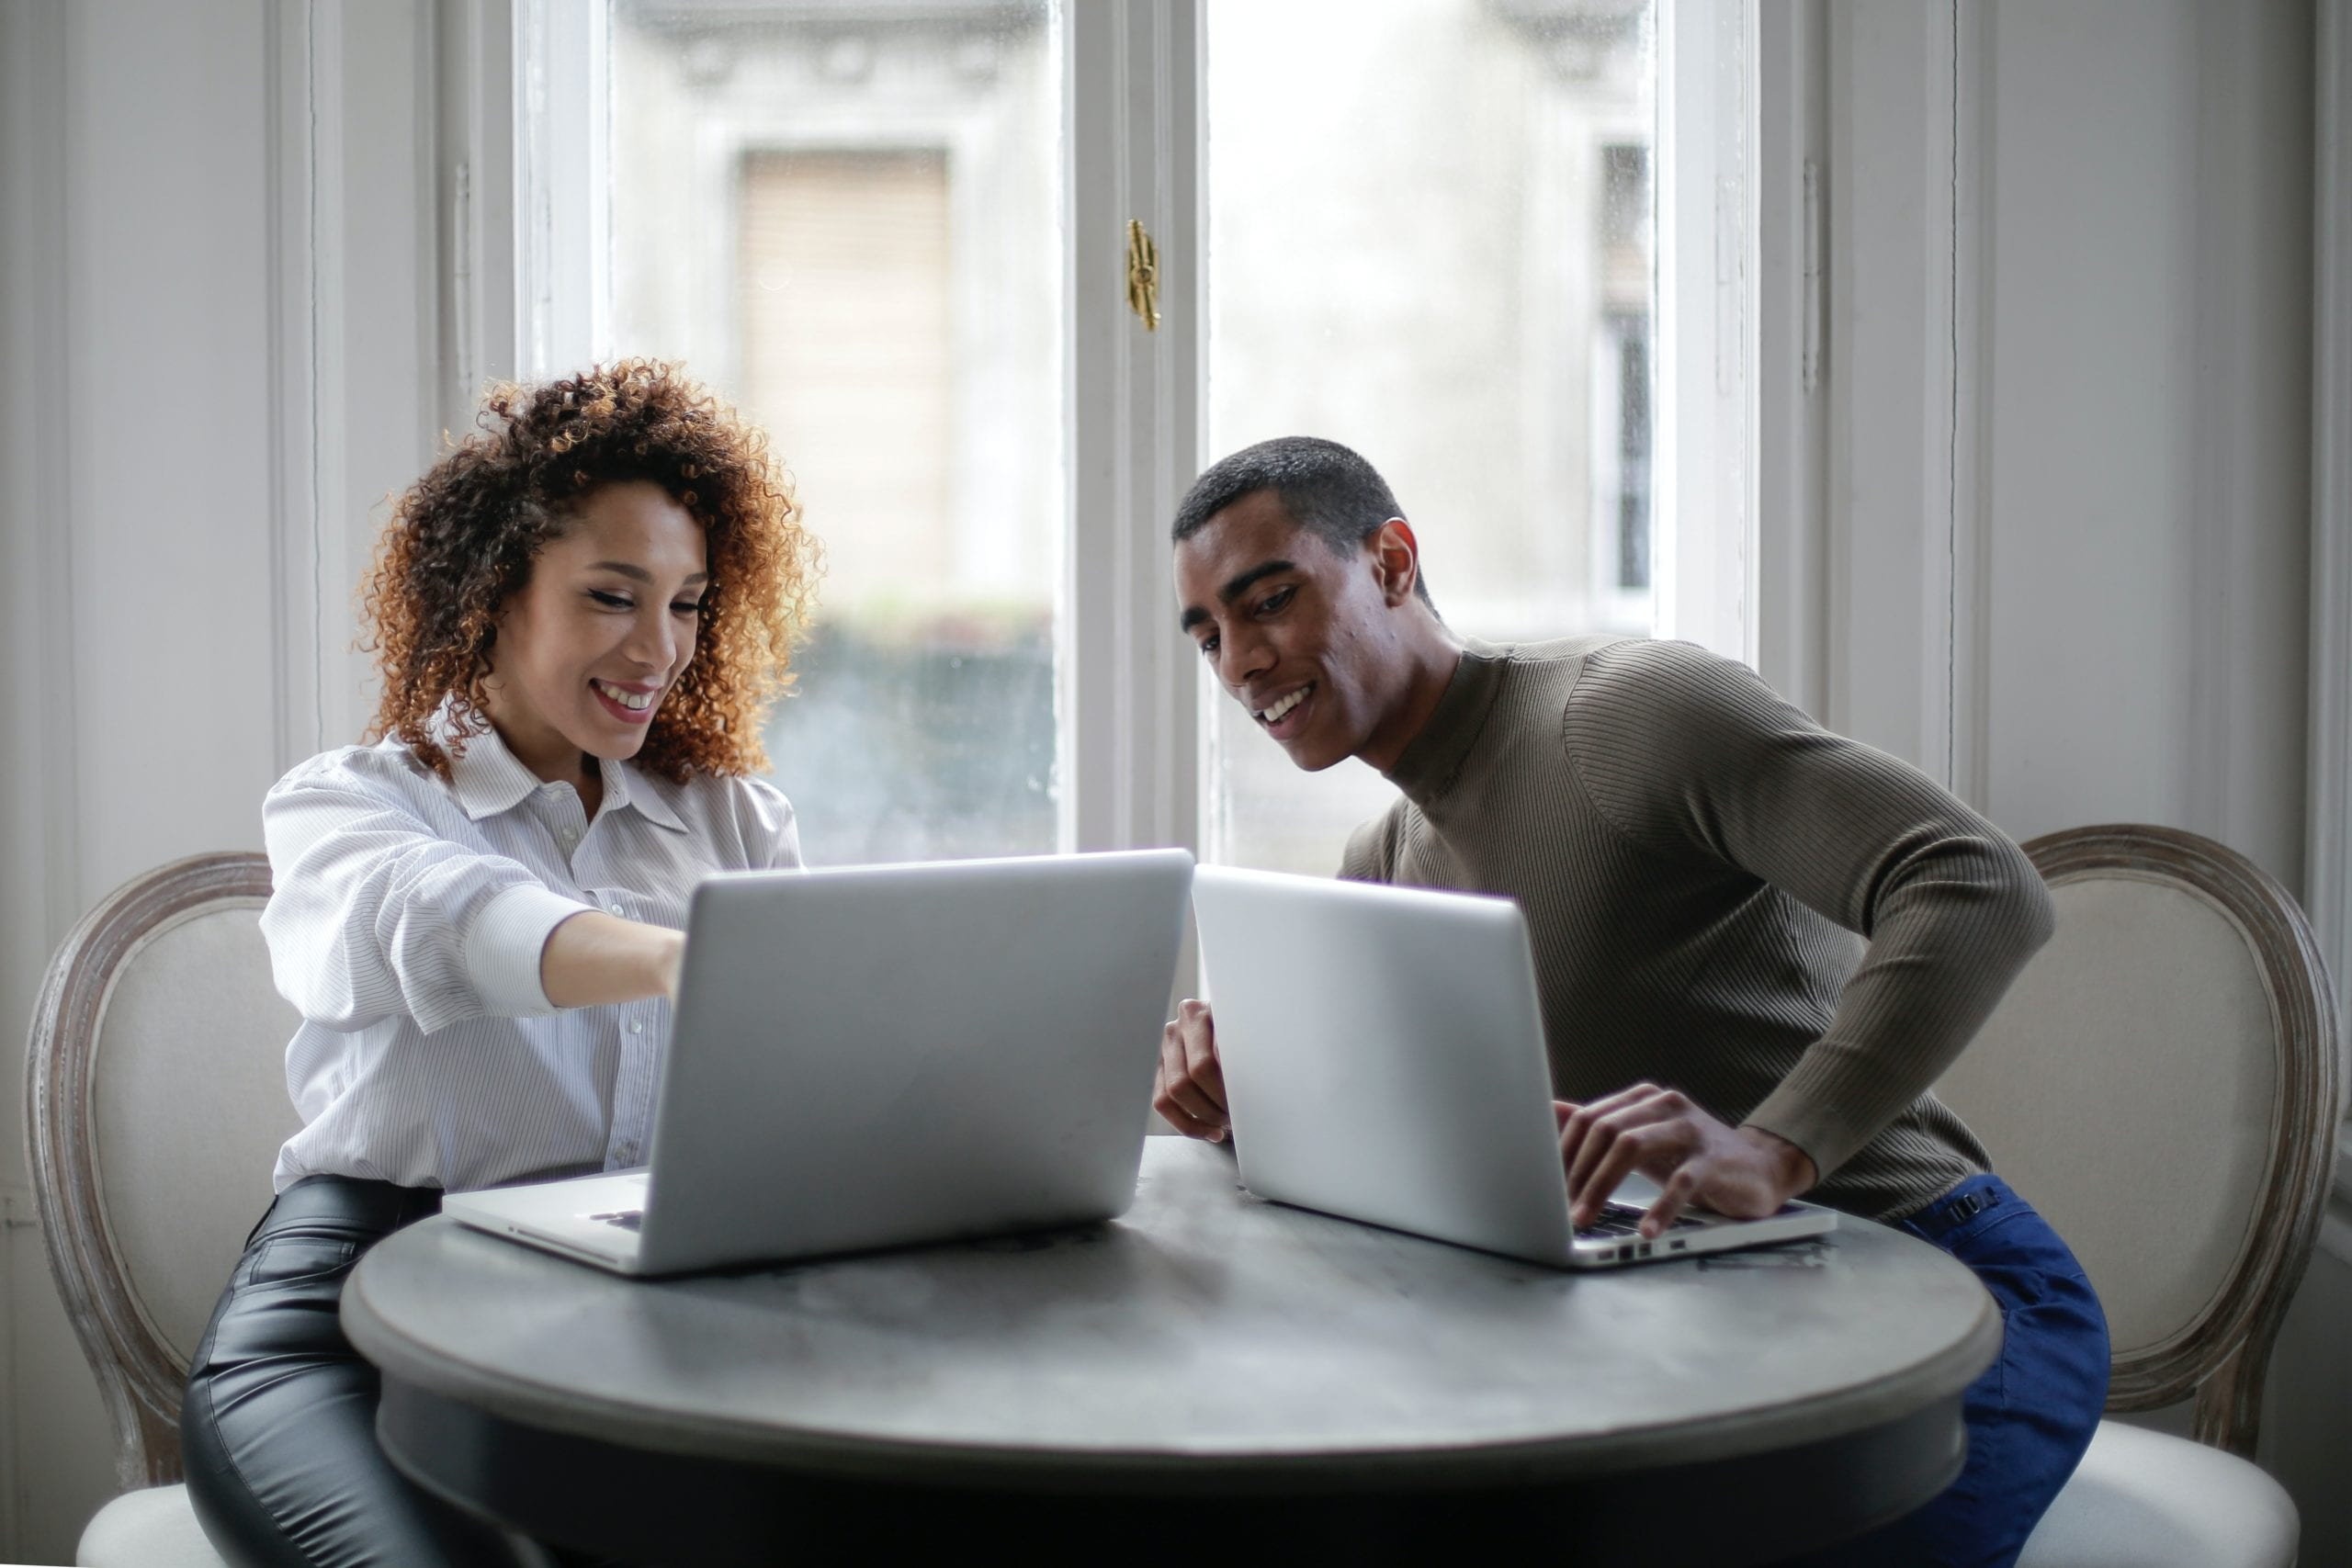 positive-young-ethnic-colleagues-using-laptops-on-round-table-near-window-at-home